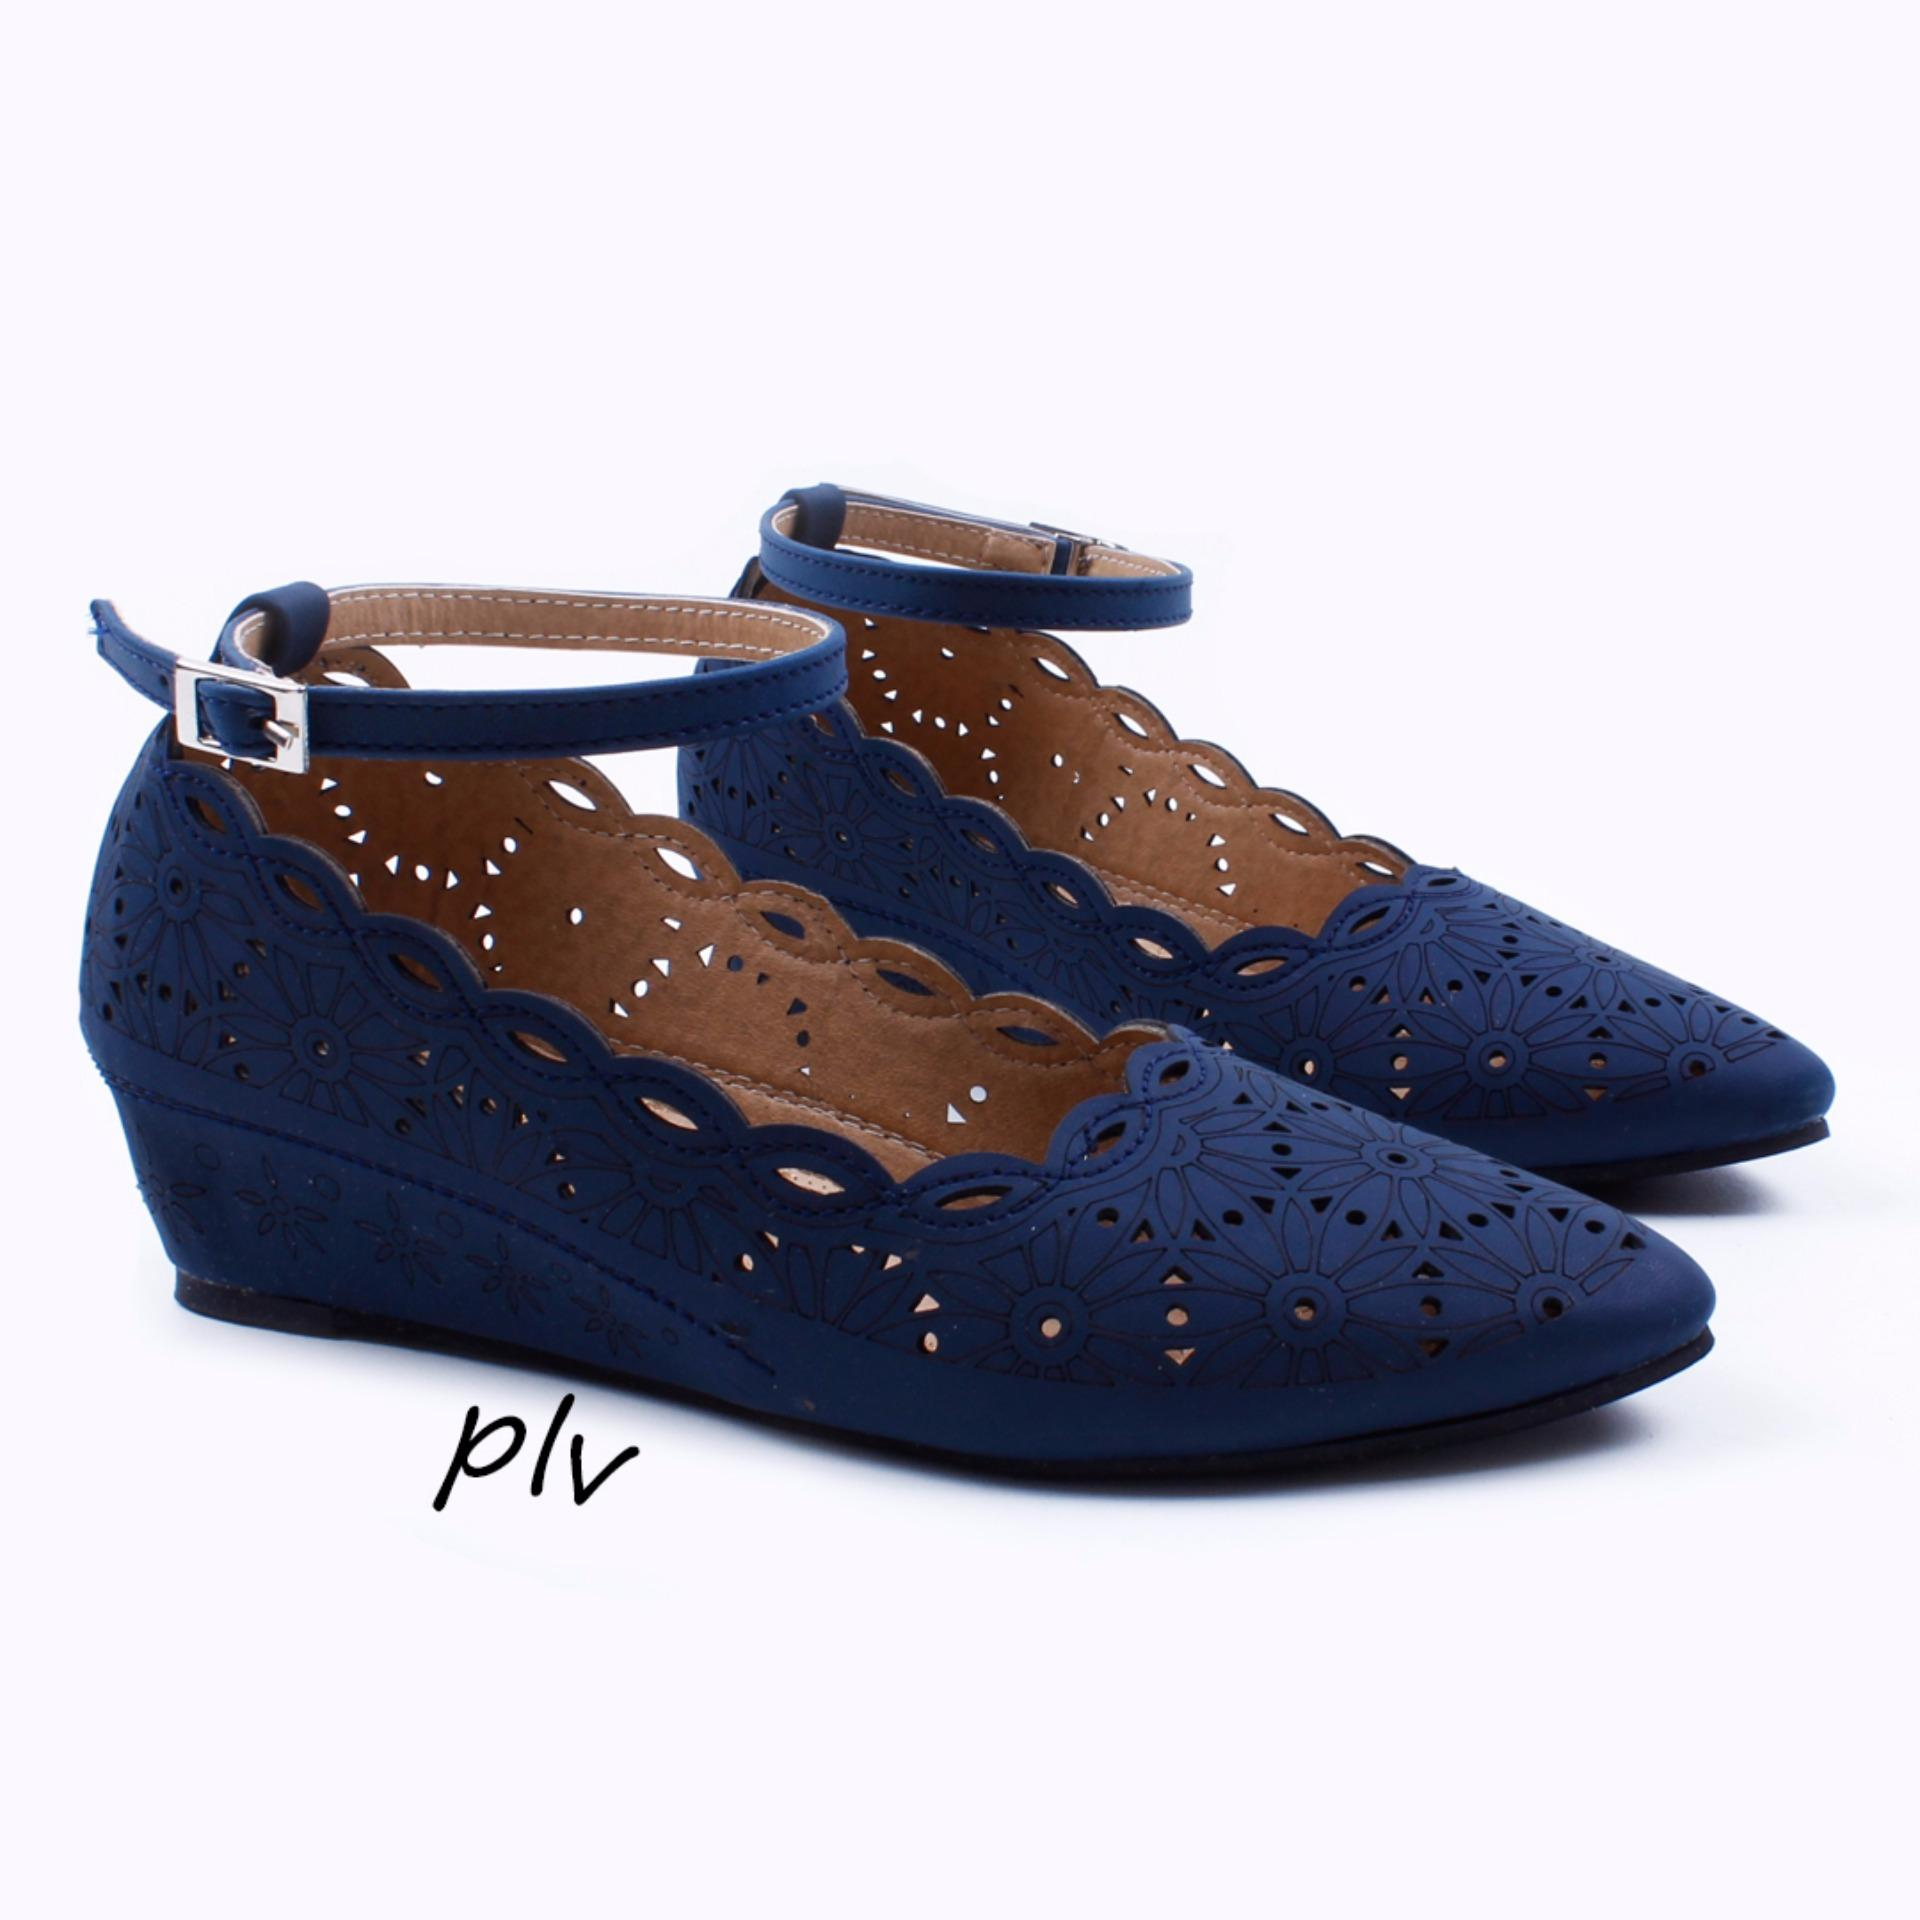 Penawaran Istimewa Pointed Toe Ankle Strap Hidden Heel Wedges Bs27 Navy Terbaru